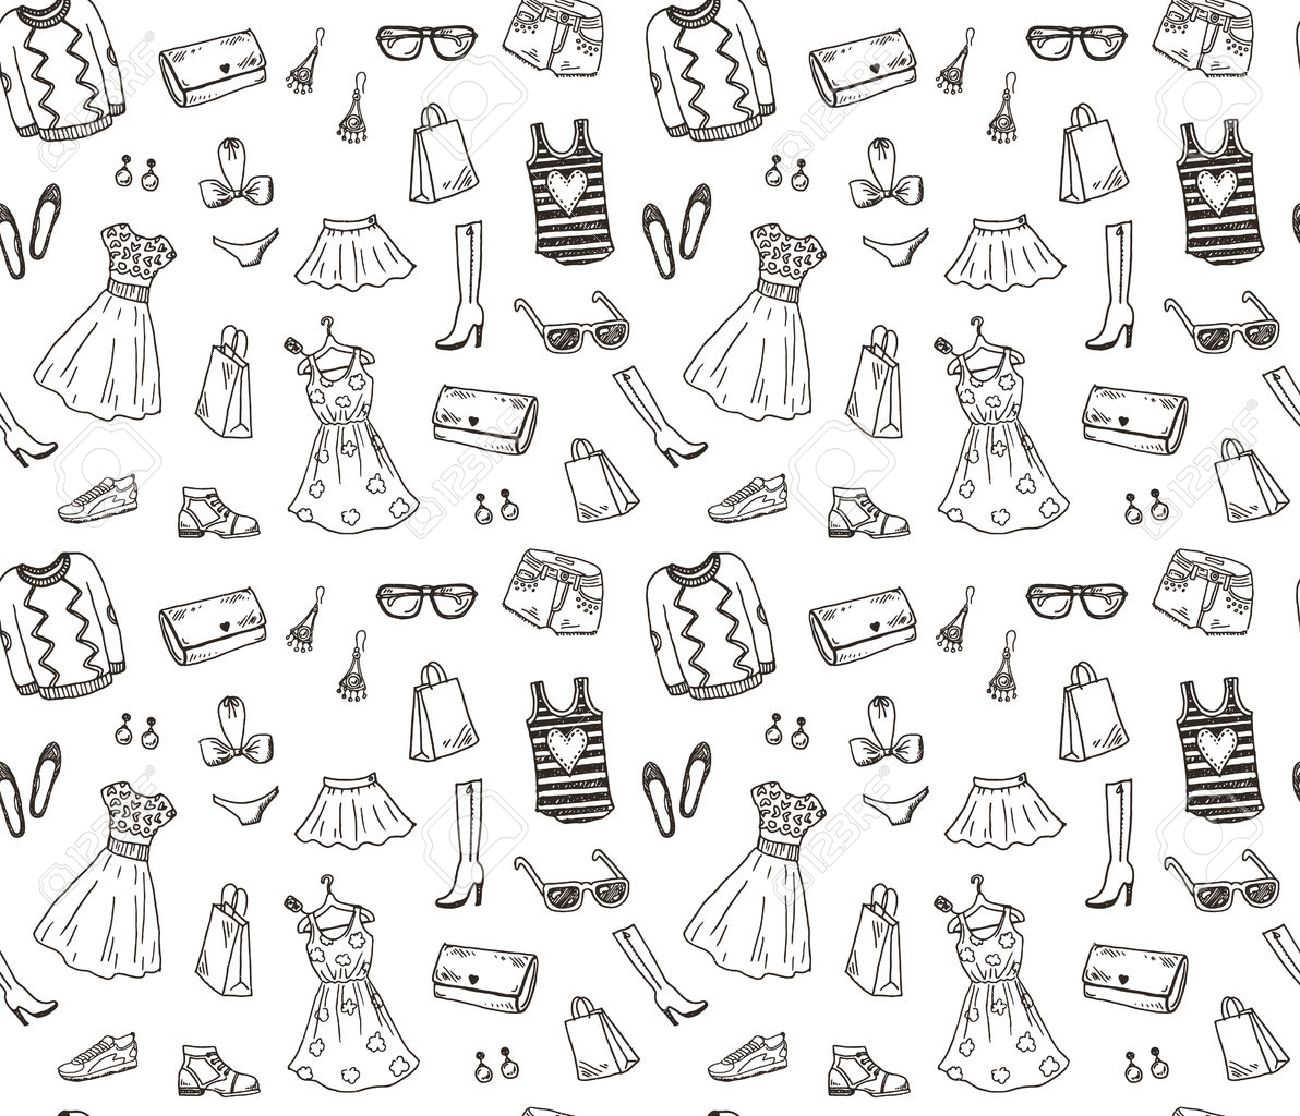 Women clothes and accessories, hand drawn doodle seamless pattern - 41724922